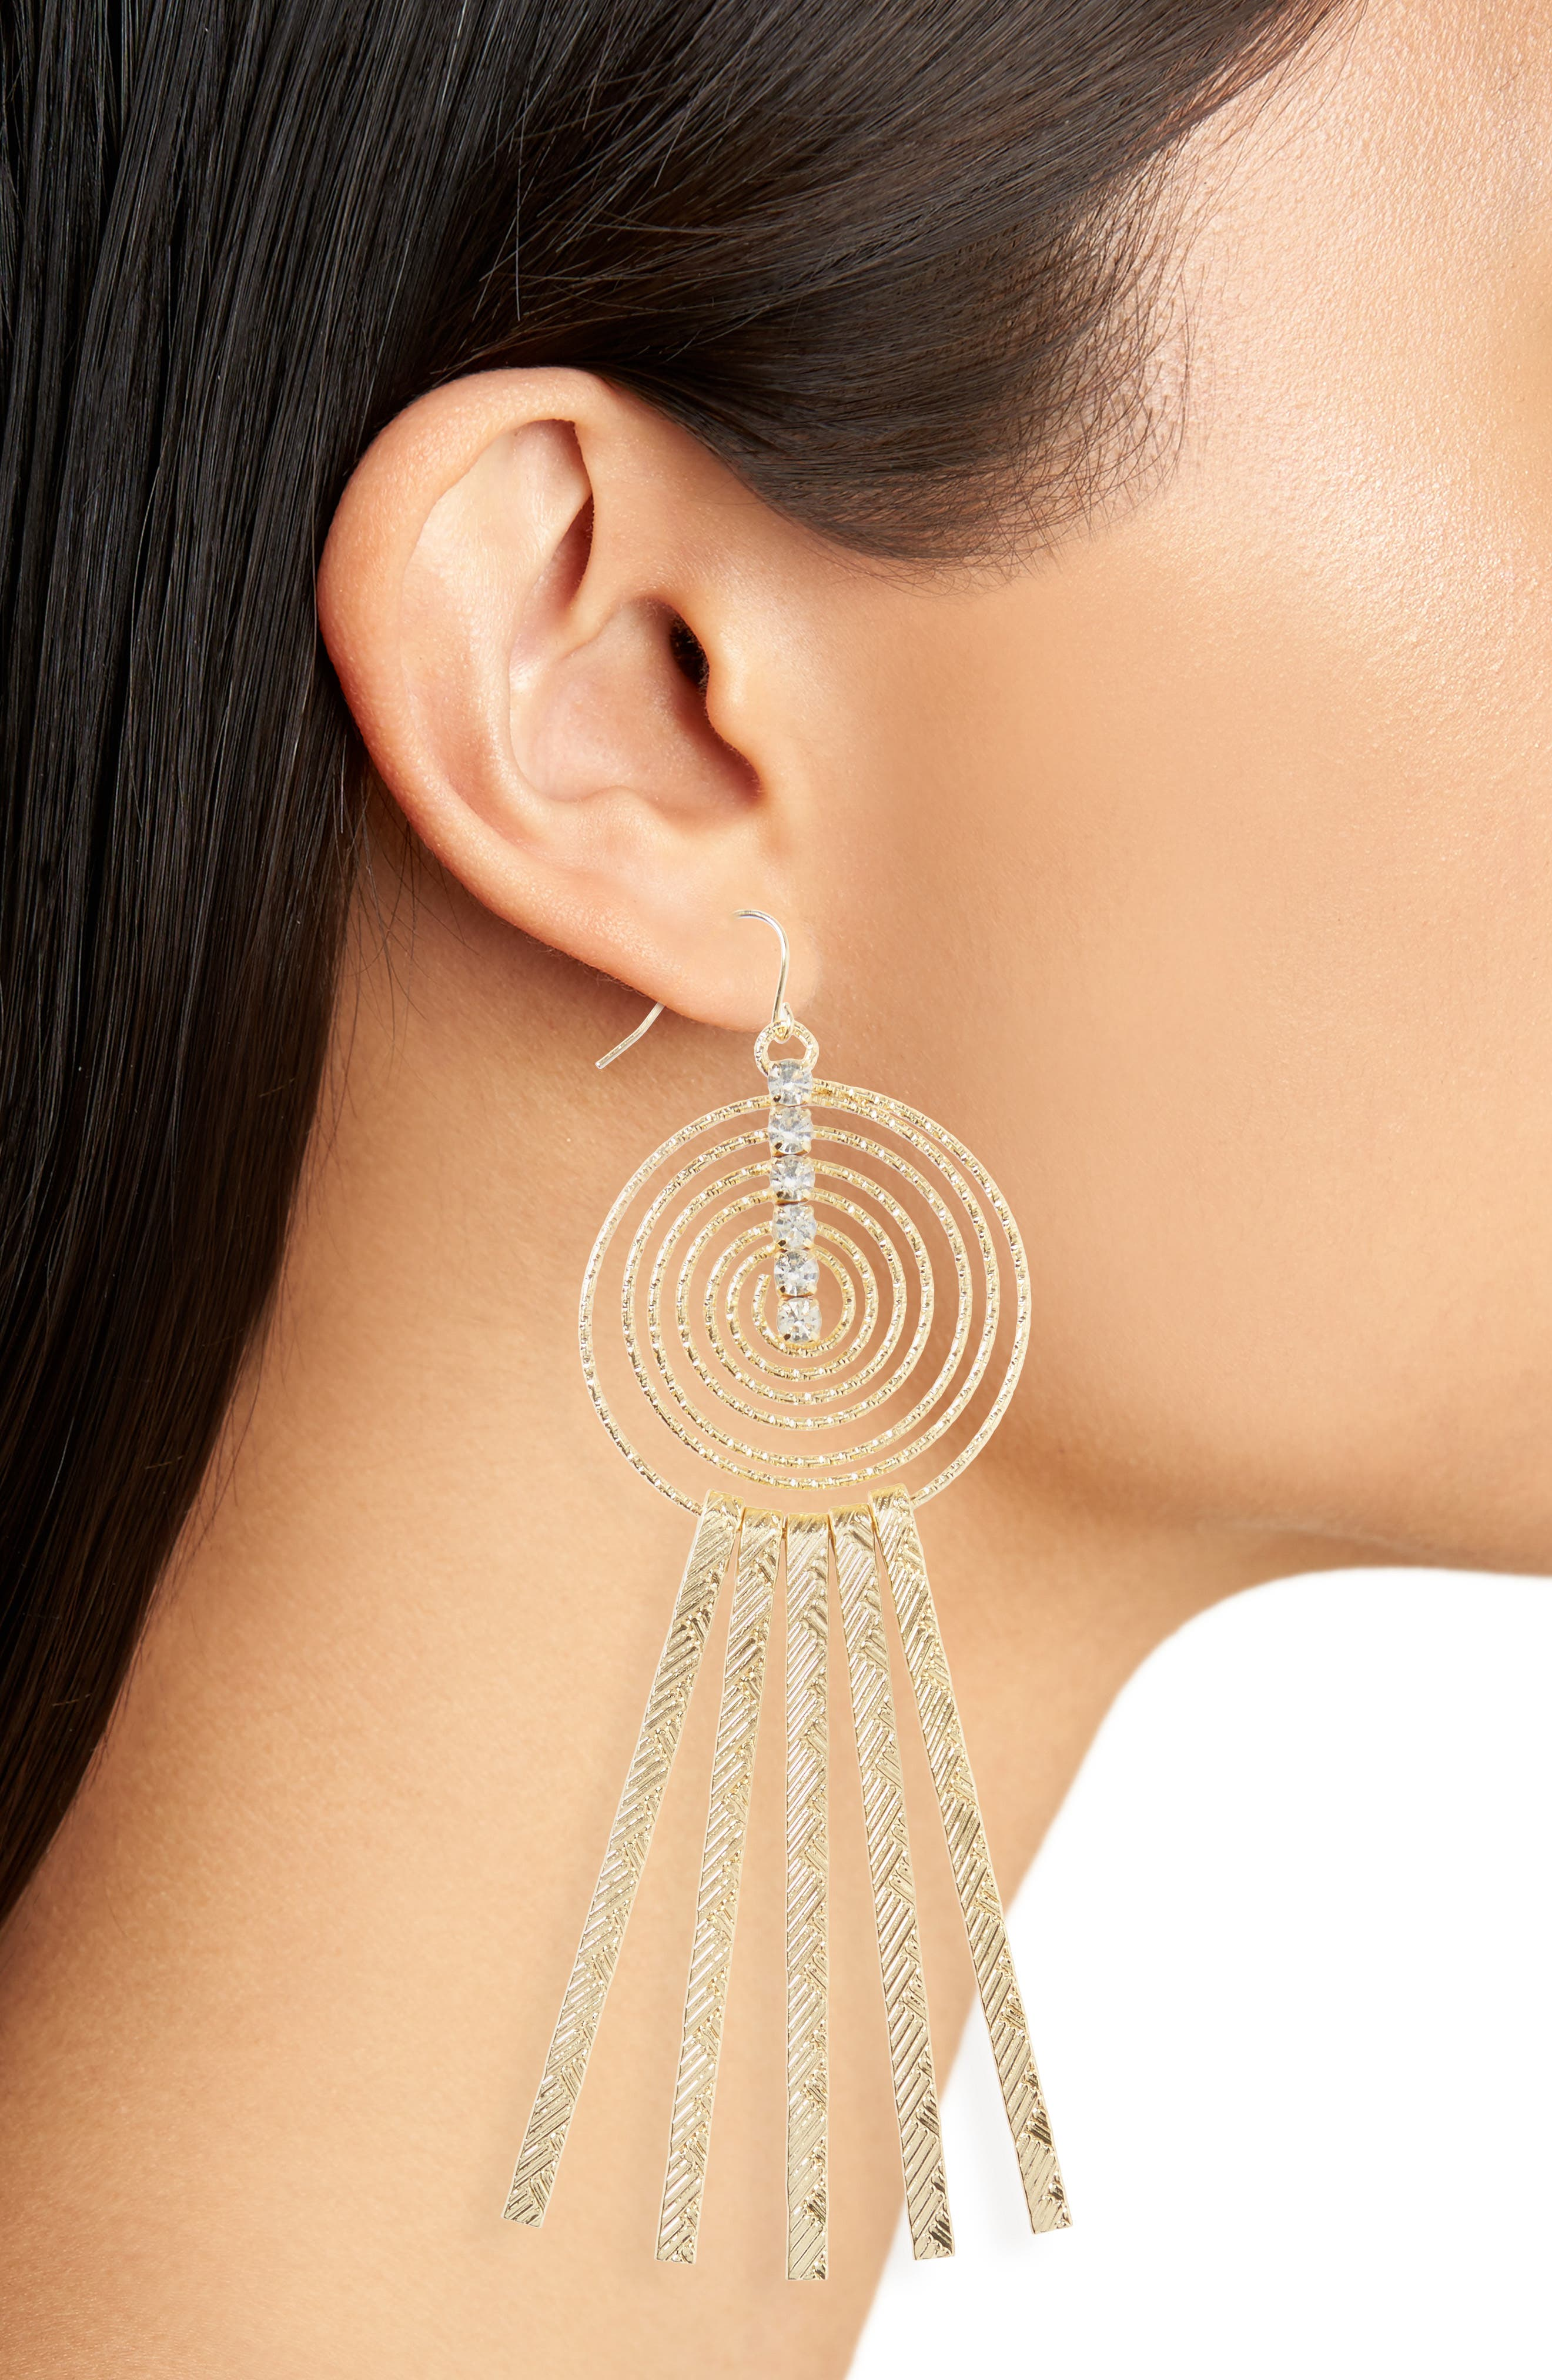 Swirly Sticks Drop Earrings,                             Alternate thumbnail 2, color,                             710